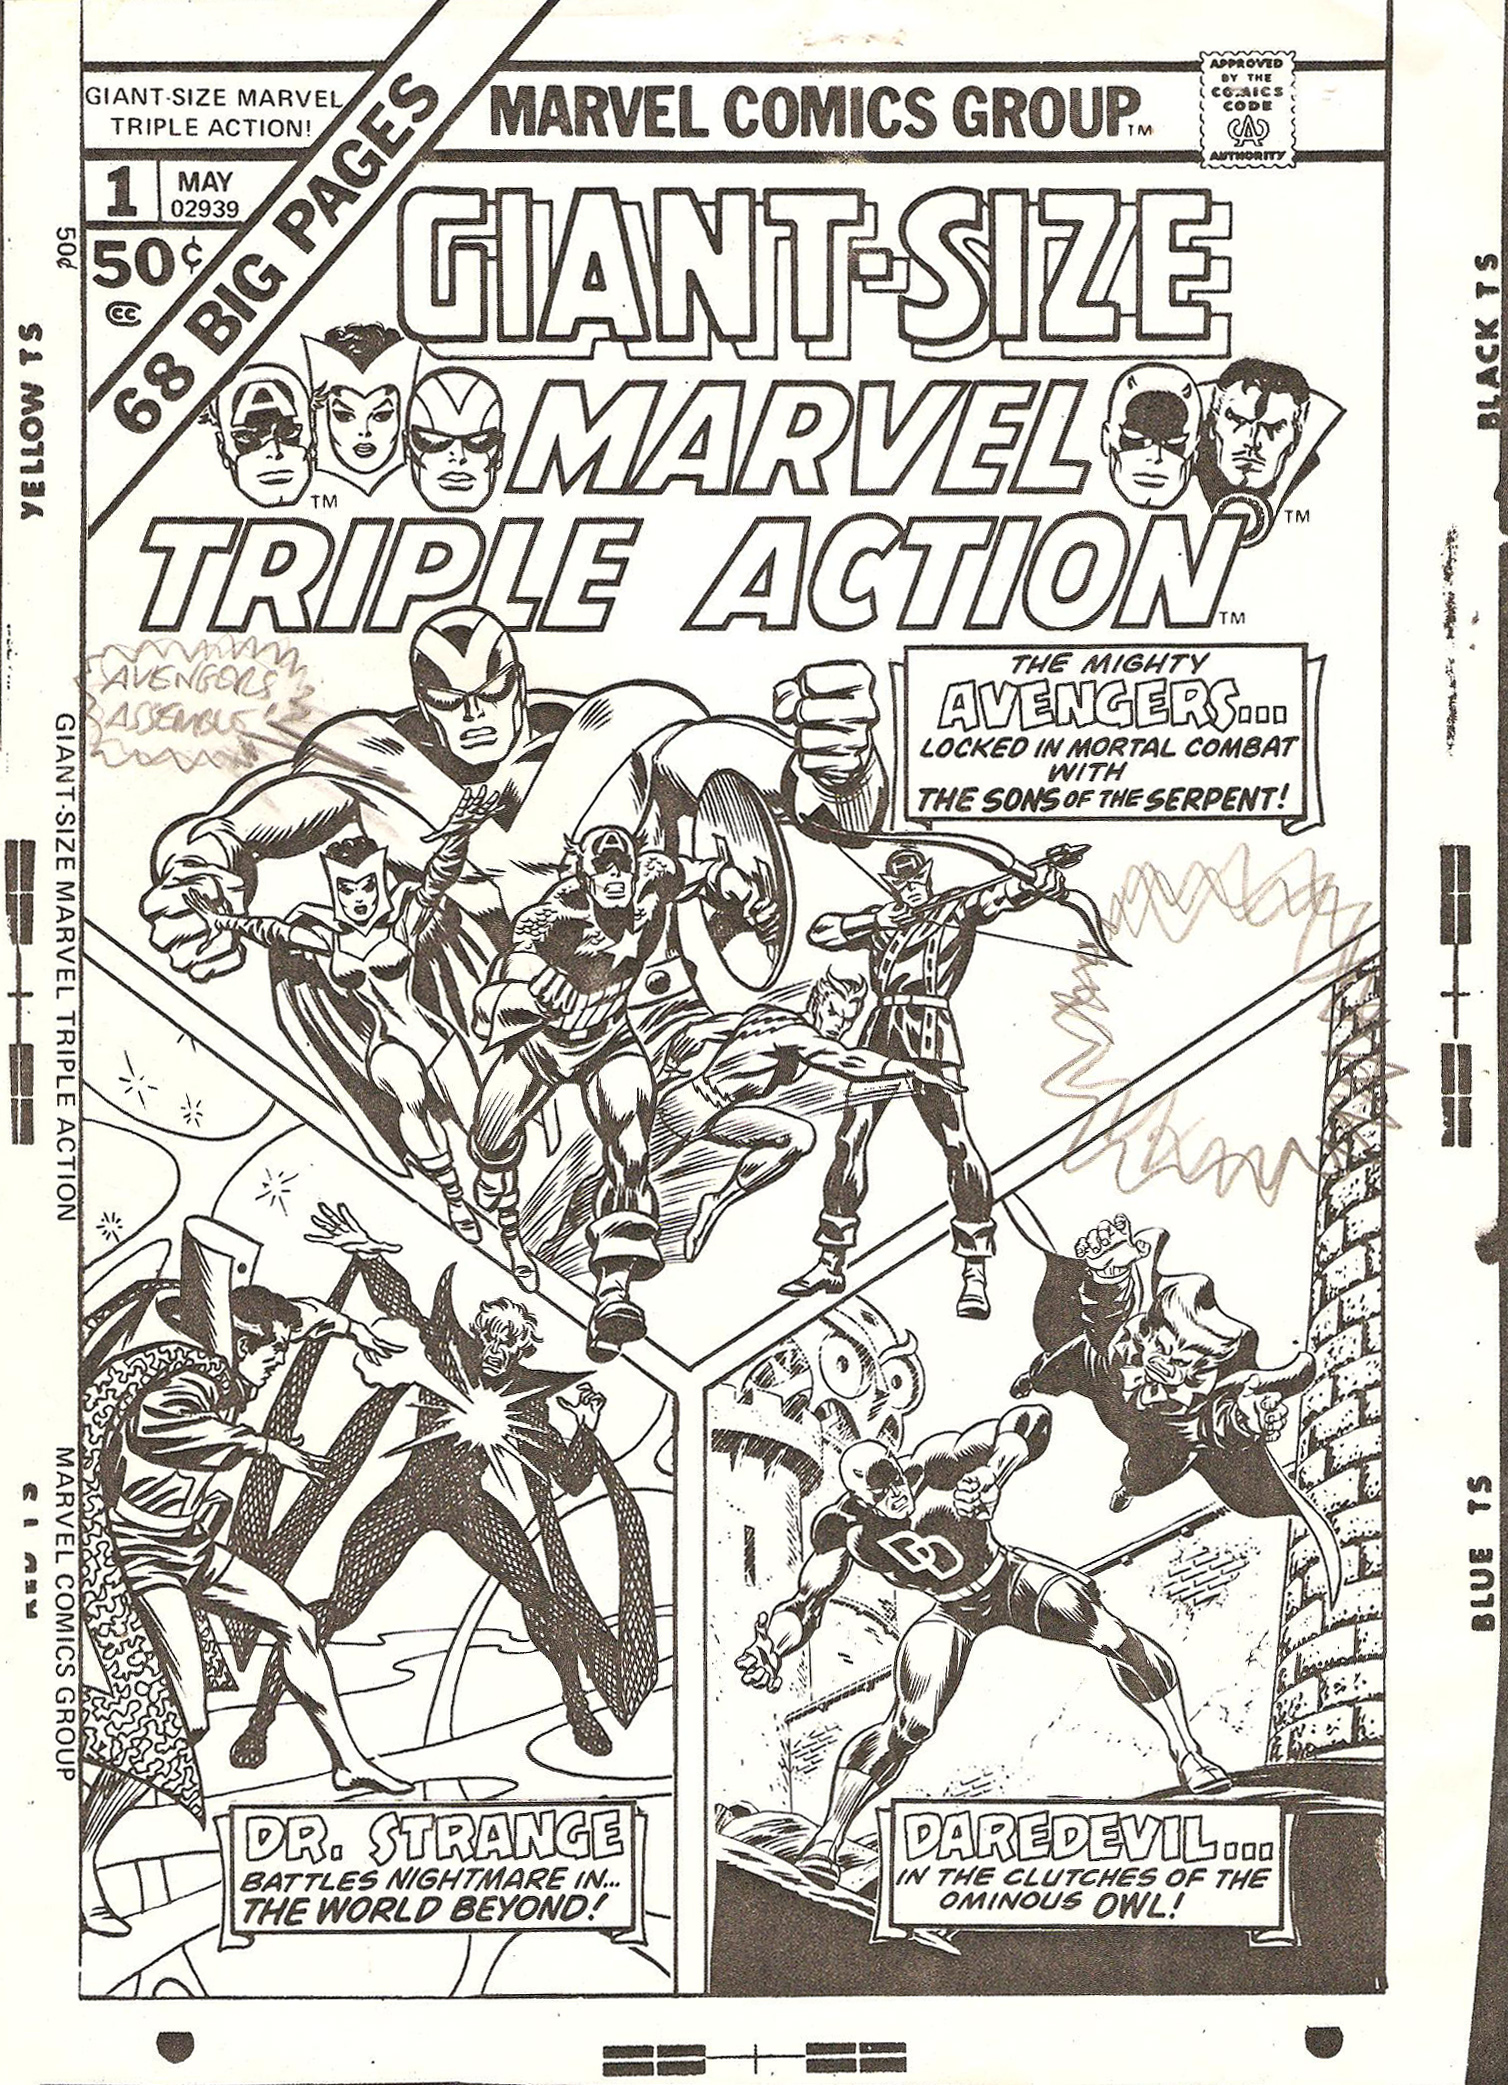 Comic Book Cover Black And White : Stan lee explains how to make a dull comic book cover